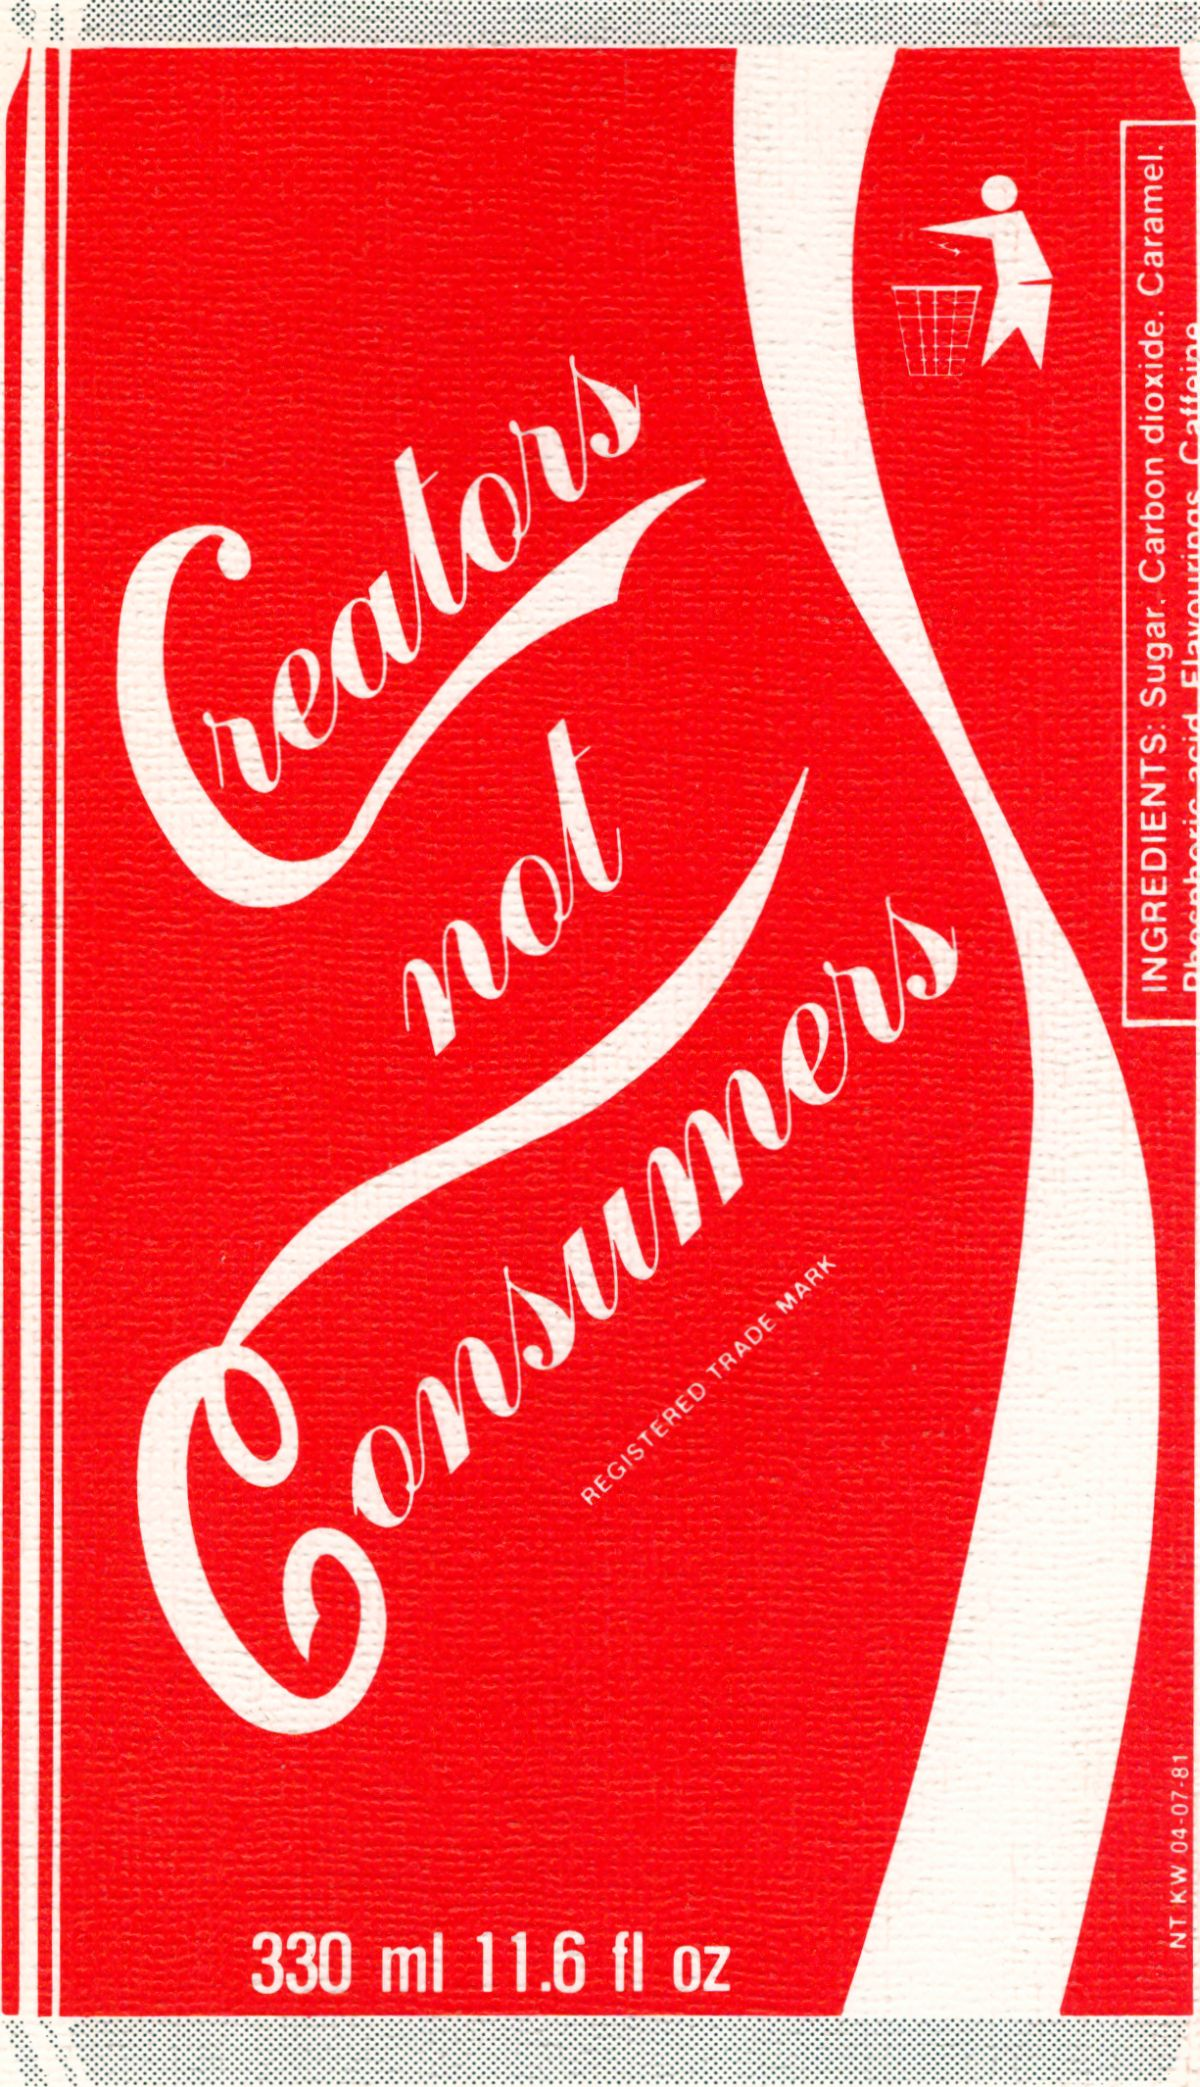 Creators not Consumers - cover of second edition